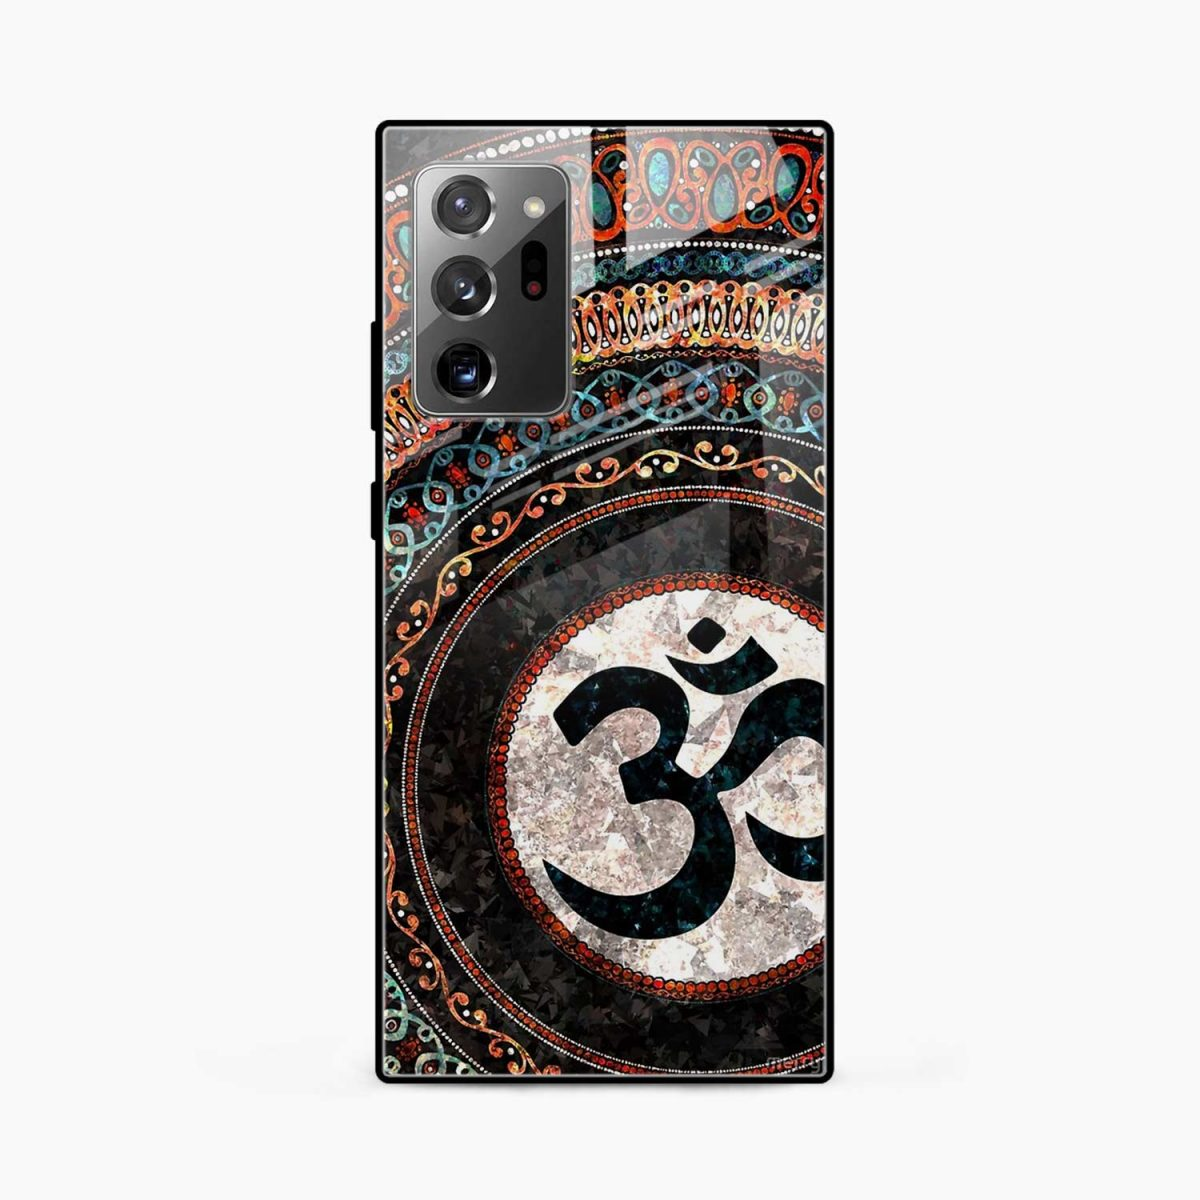 om glass front view samsung galaxy note20 ultra back cover